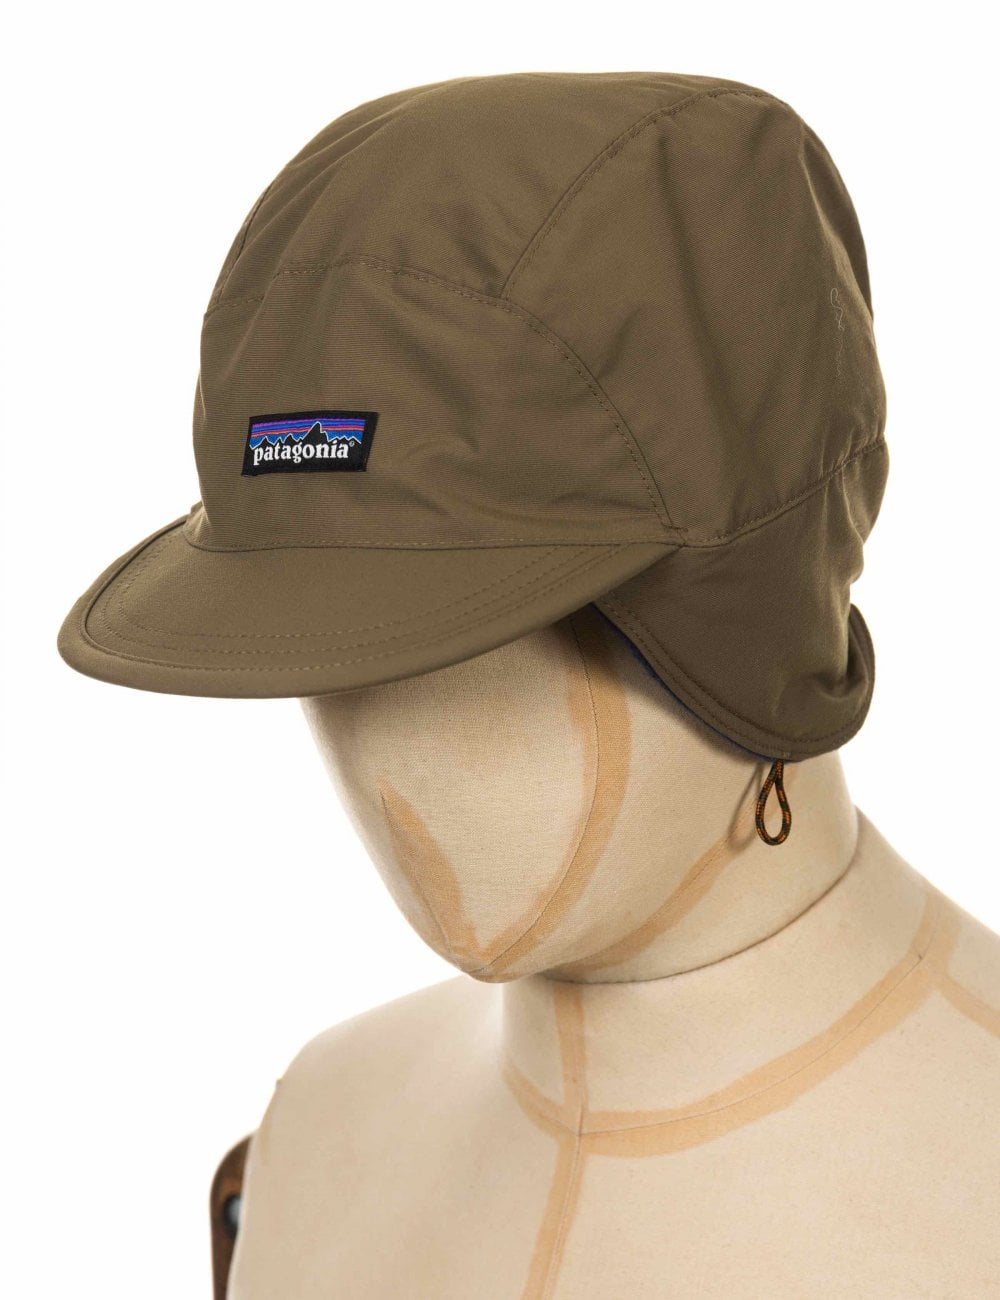 924c2087f468b Patagonia Shelled Synchilla Duckbill Cap - Dark Ash - Accessories ...